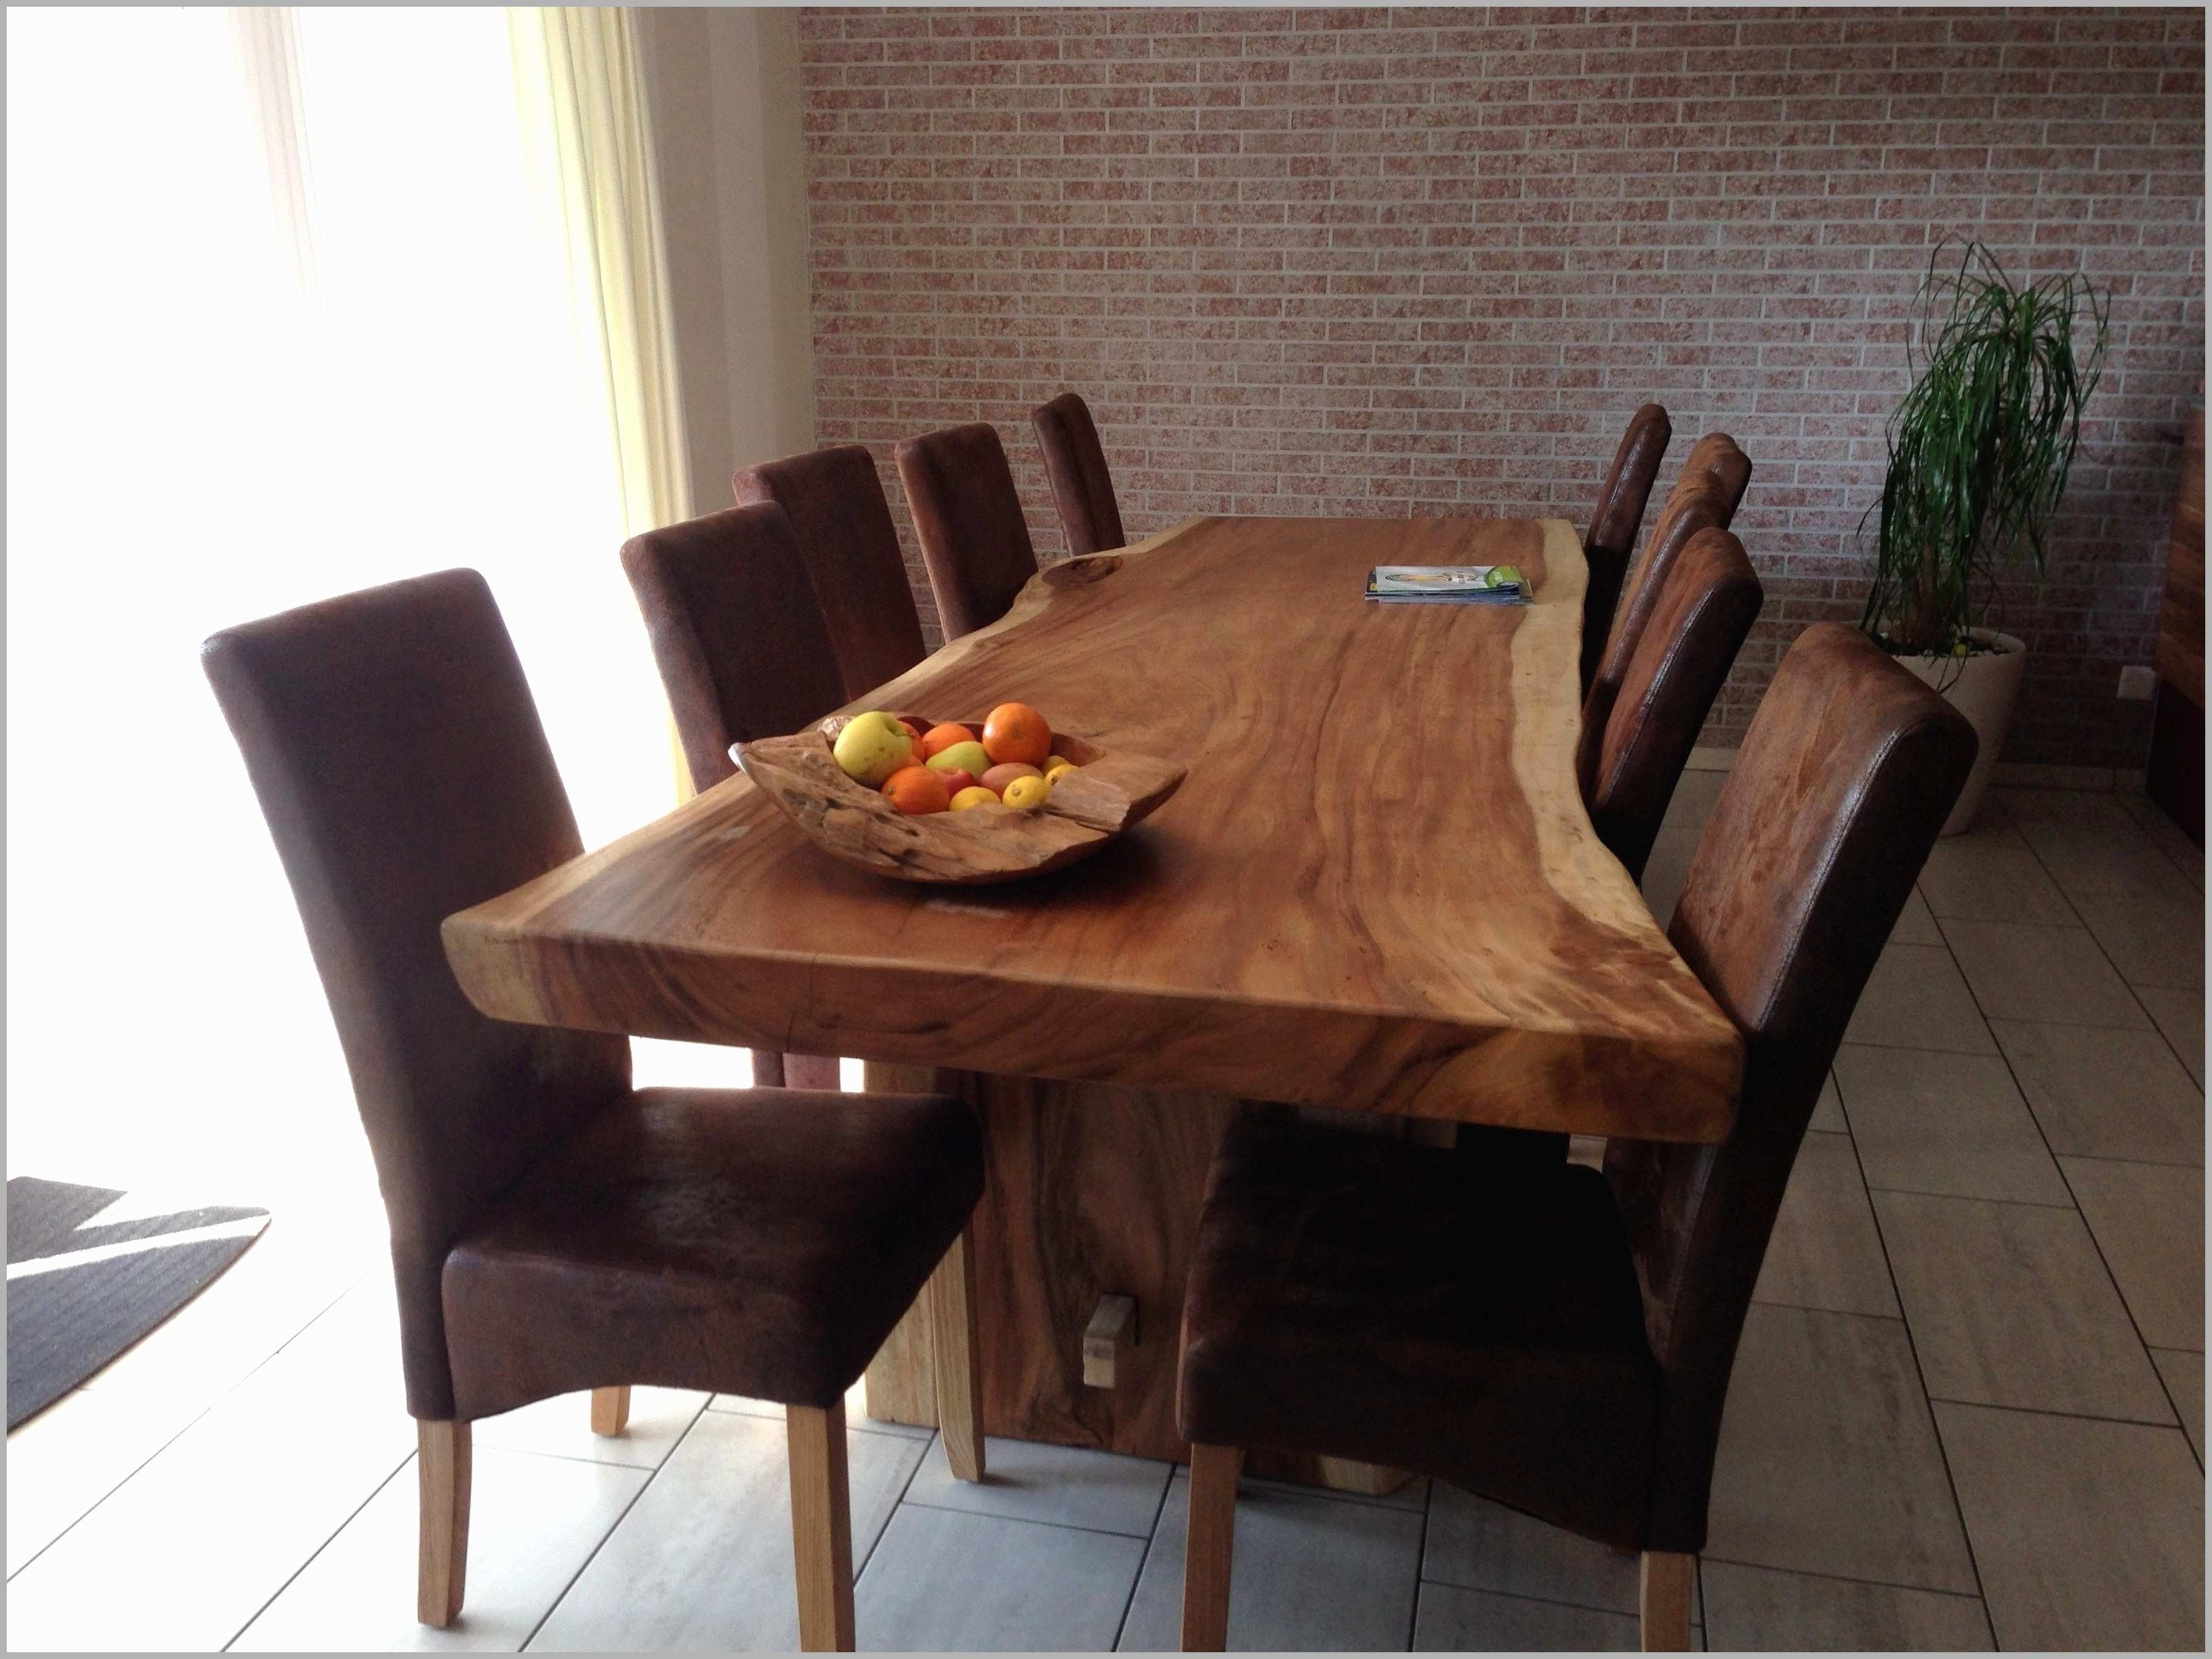 Cheap 6 Seater Dining Table And Chairs Fresh 20 Inspirational Wooden Pertaining To 2018 Cheap 8 Seater Dining Tables (View 6 of 25)